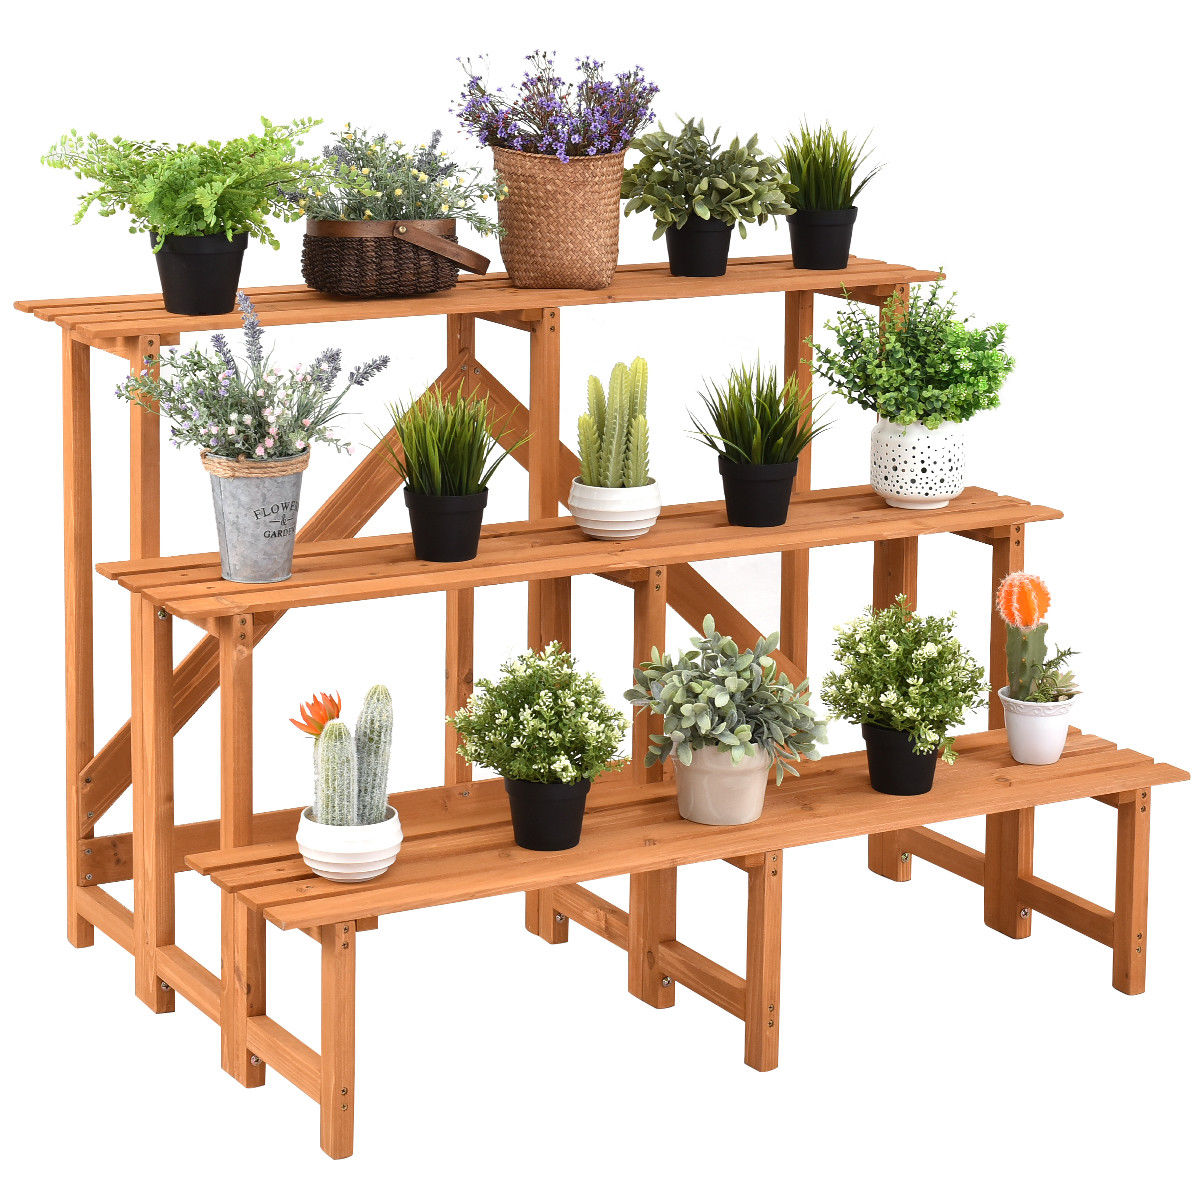 Costway 3 Tier Wide Wood Plant Stand Flower Pot Holder Display Rack Shelves Step Ladder by Costway